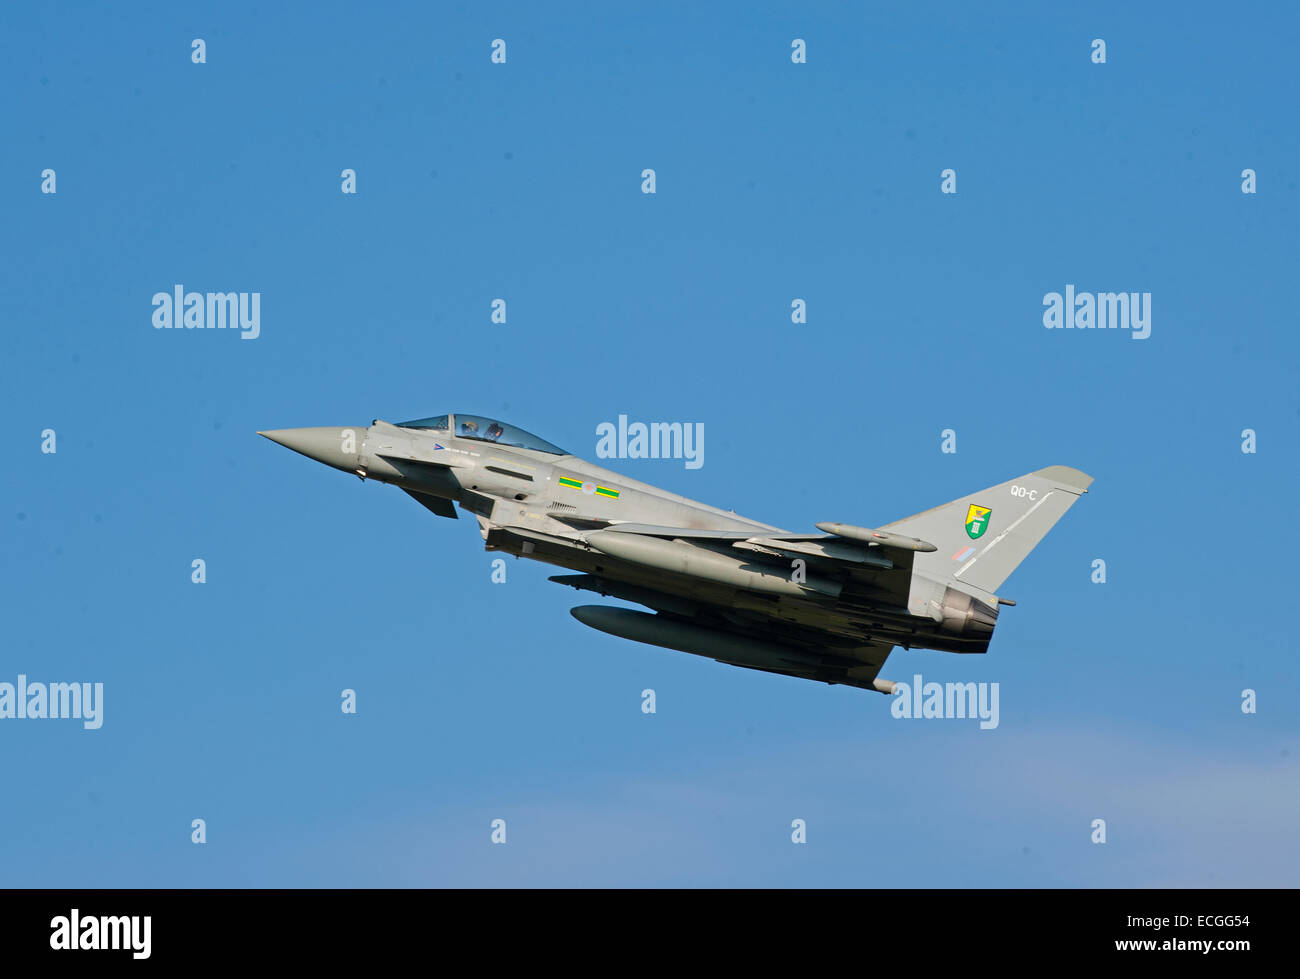 Eurofighter Typhoon FRG4 on low approach to RAF Lossiemouth, Scotland.  SCO 9341. - Stock Image